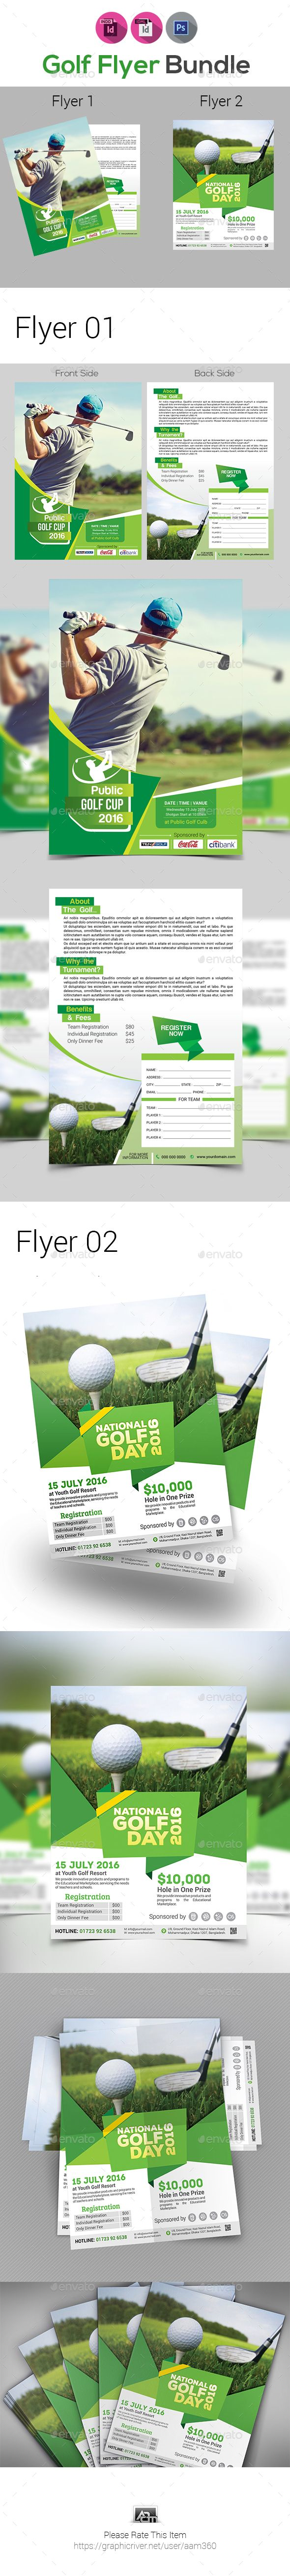 Golf Tournament Flyer Bundle  Flyer Template Adobe Indesign And